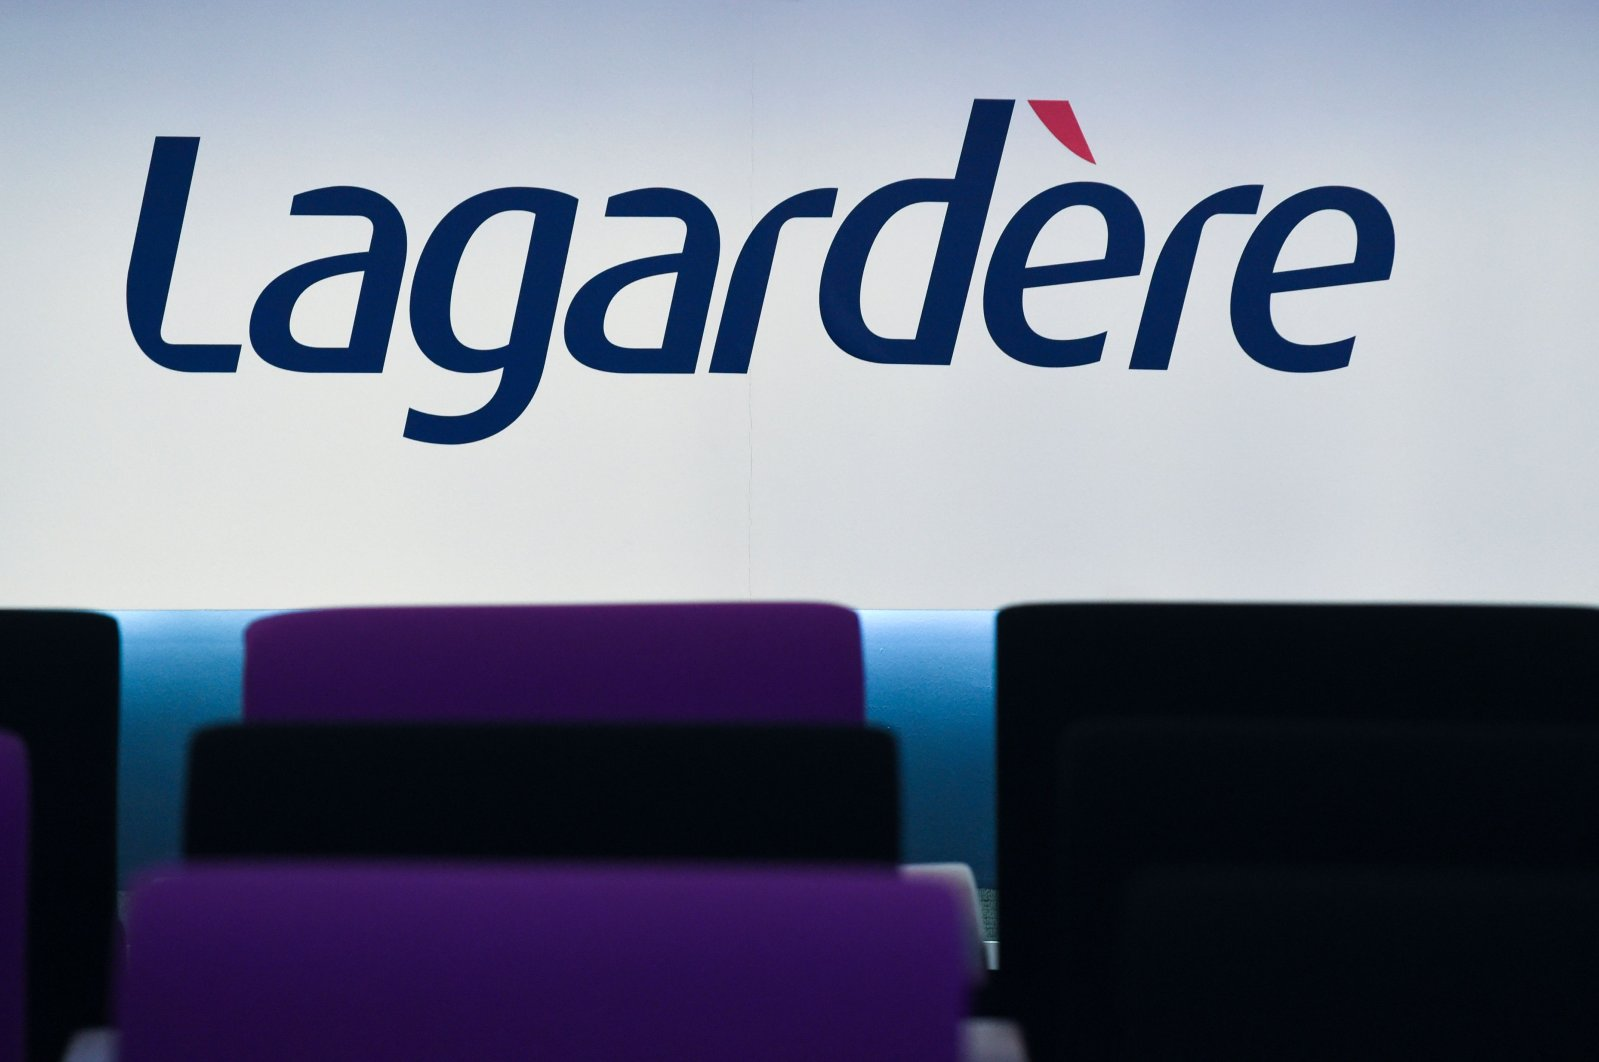 The logo of the French media group Lagardere taken during a press conference to present the group's 2018 results in Paris, March 13, 2019. (AFP Photo)